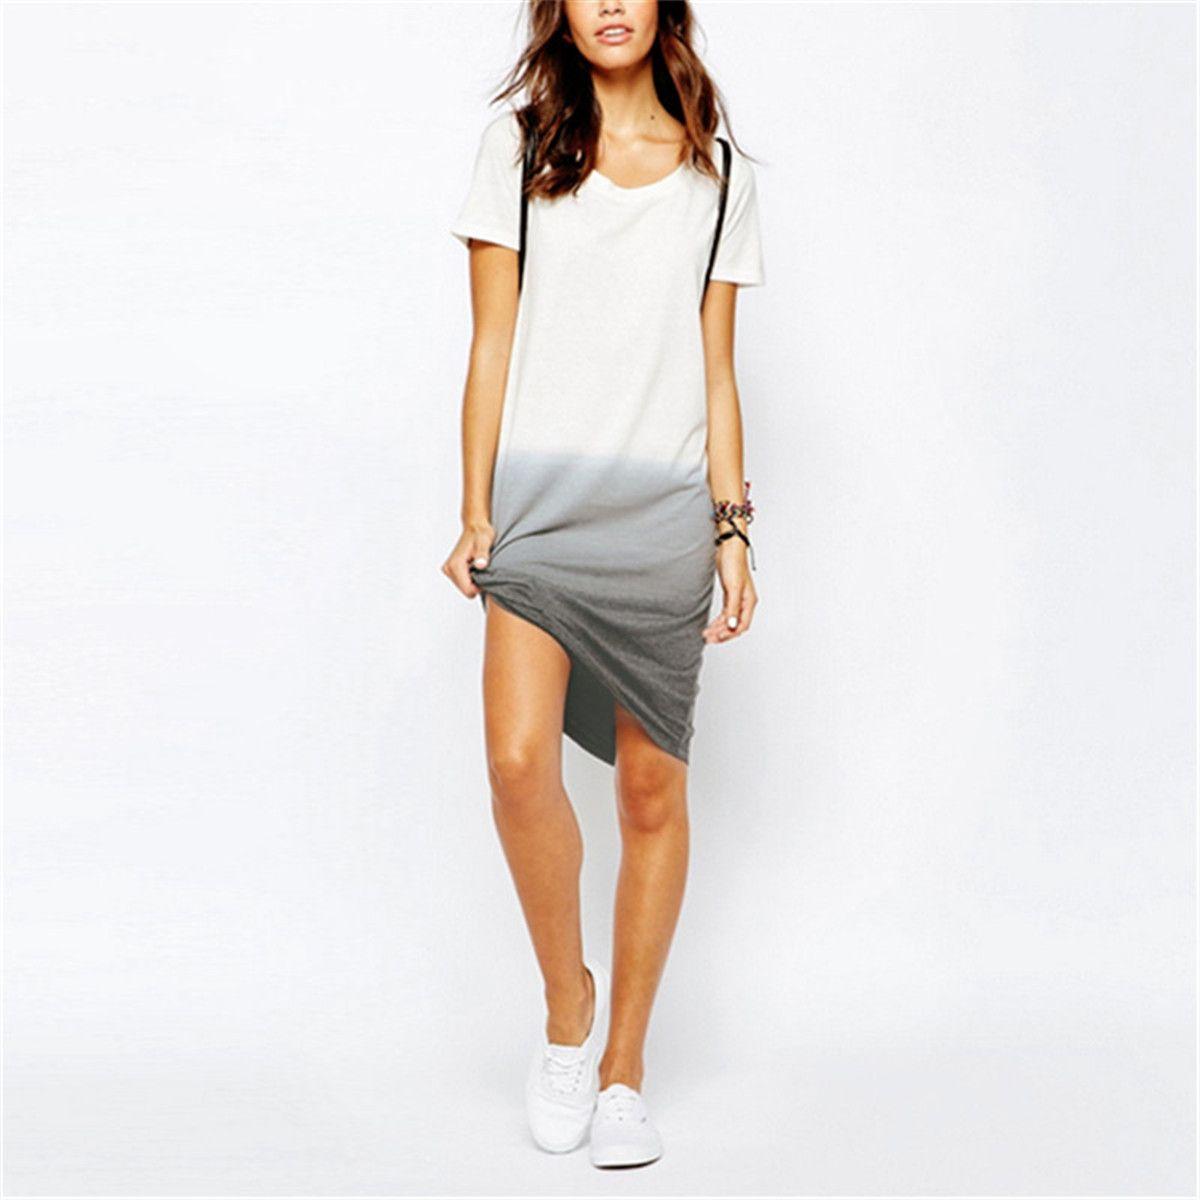 Summer style casual t shirt dress new stylish short sleeve oneck